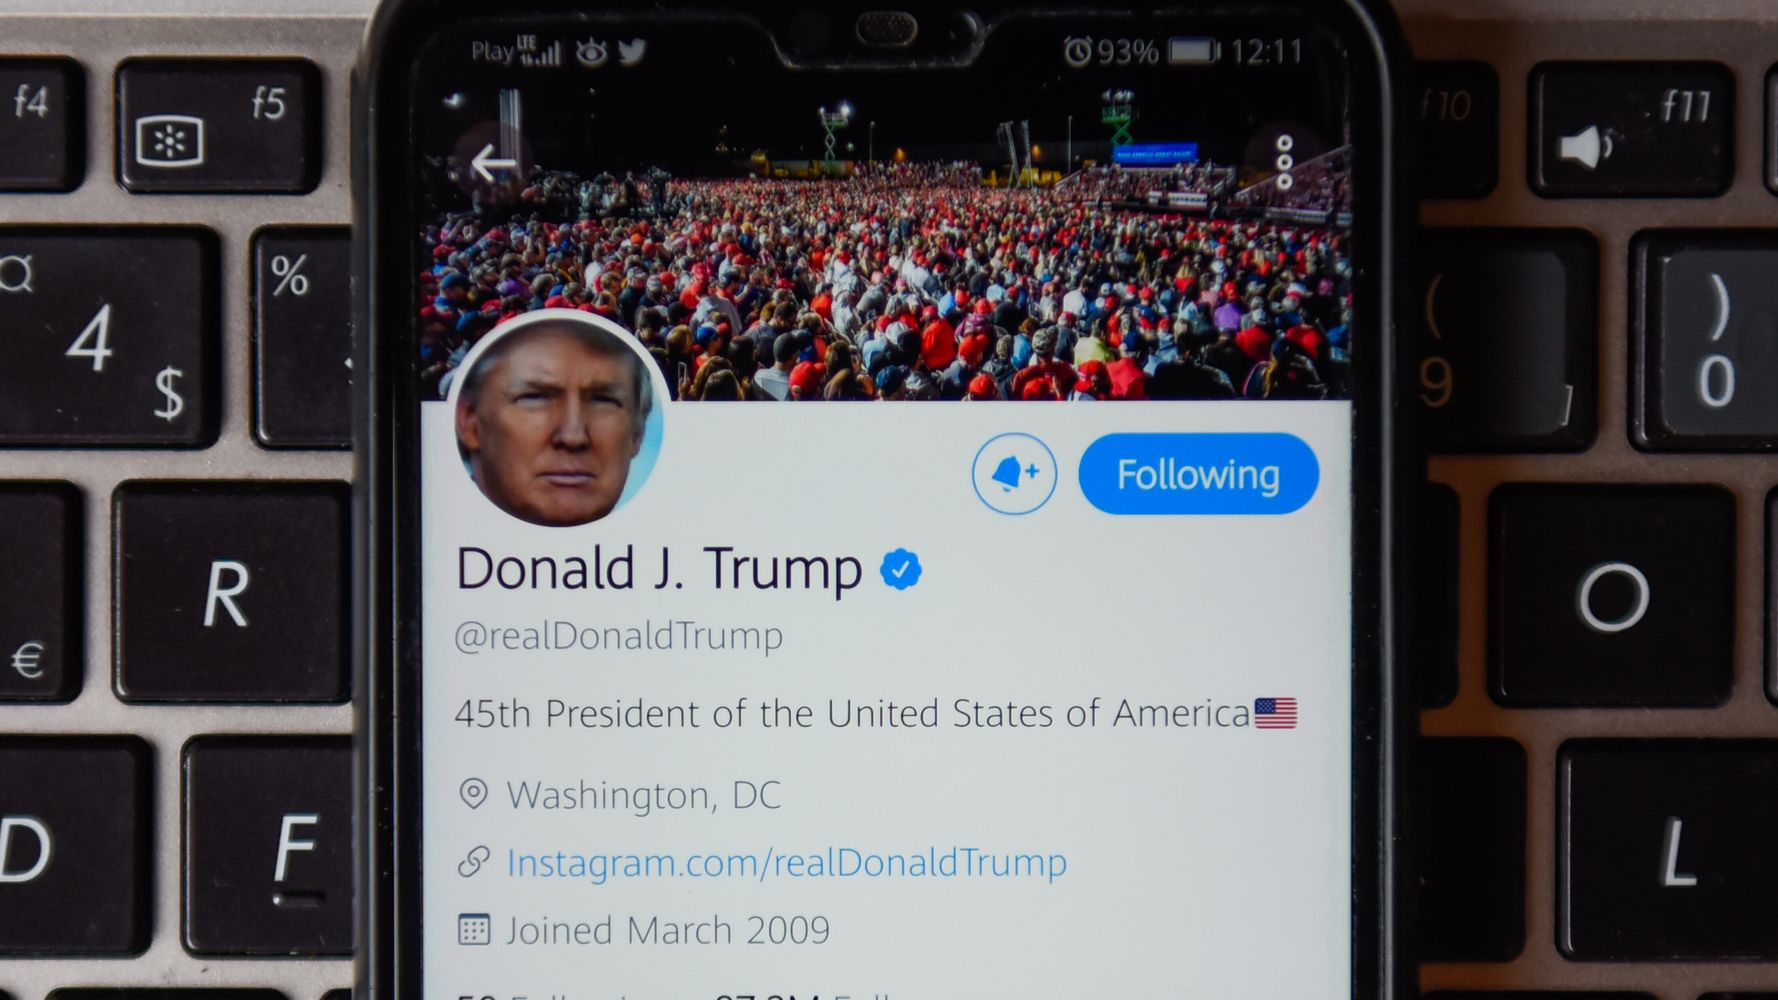 Twitter Account Posting Trump's Tweets Verbatim Has Been Flagged 4 Times